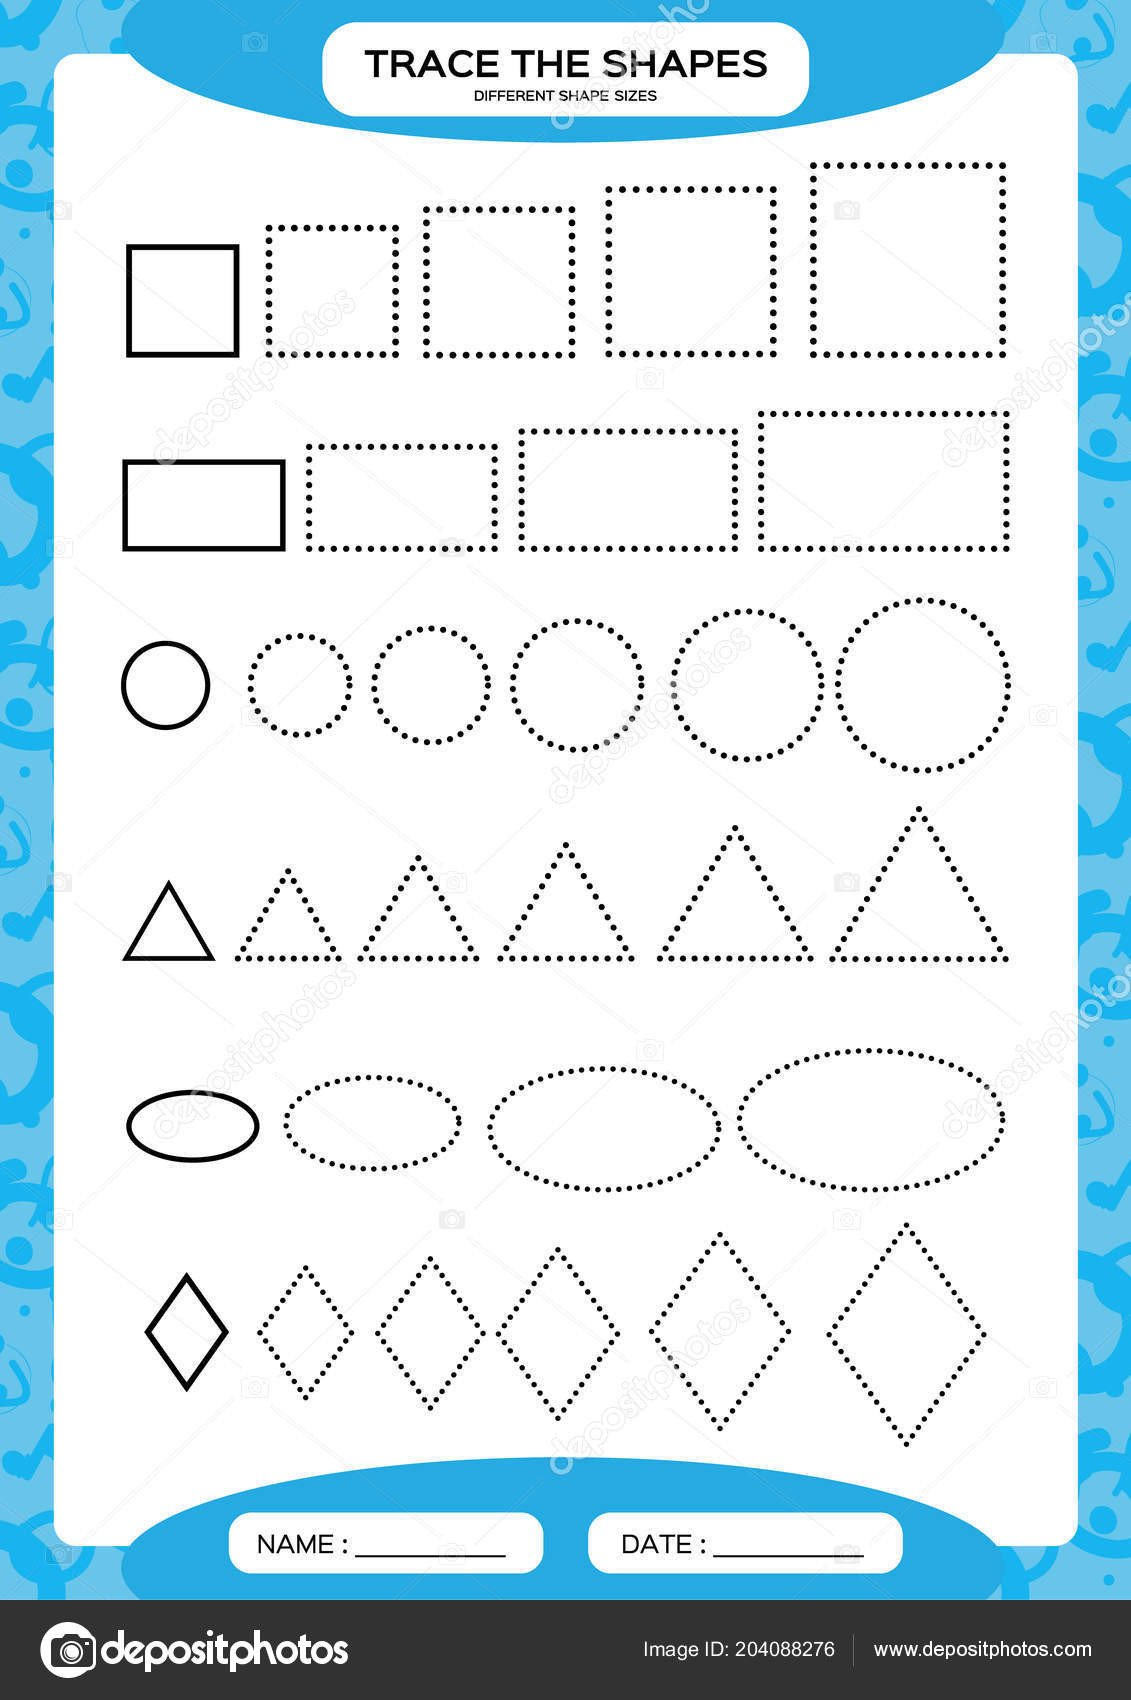 Sorting Shapes Worksheets First Grade Worksheet Fun Halloween Activities for Kids Healthy Lunch